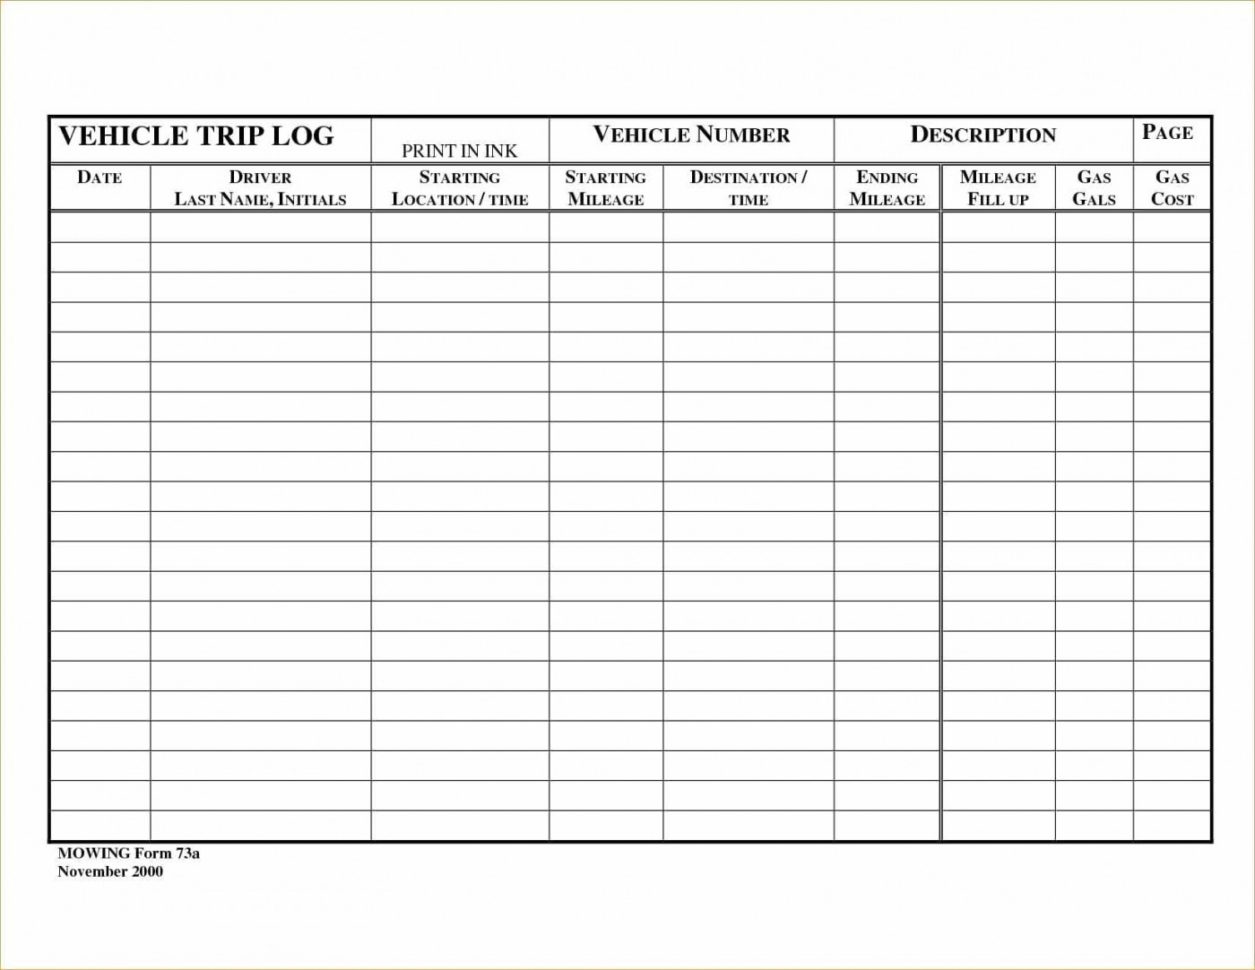 Preventive Maintenance Spreadsheet Template With Regard To 023 Service Request Template Excel Preventive Maintenance